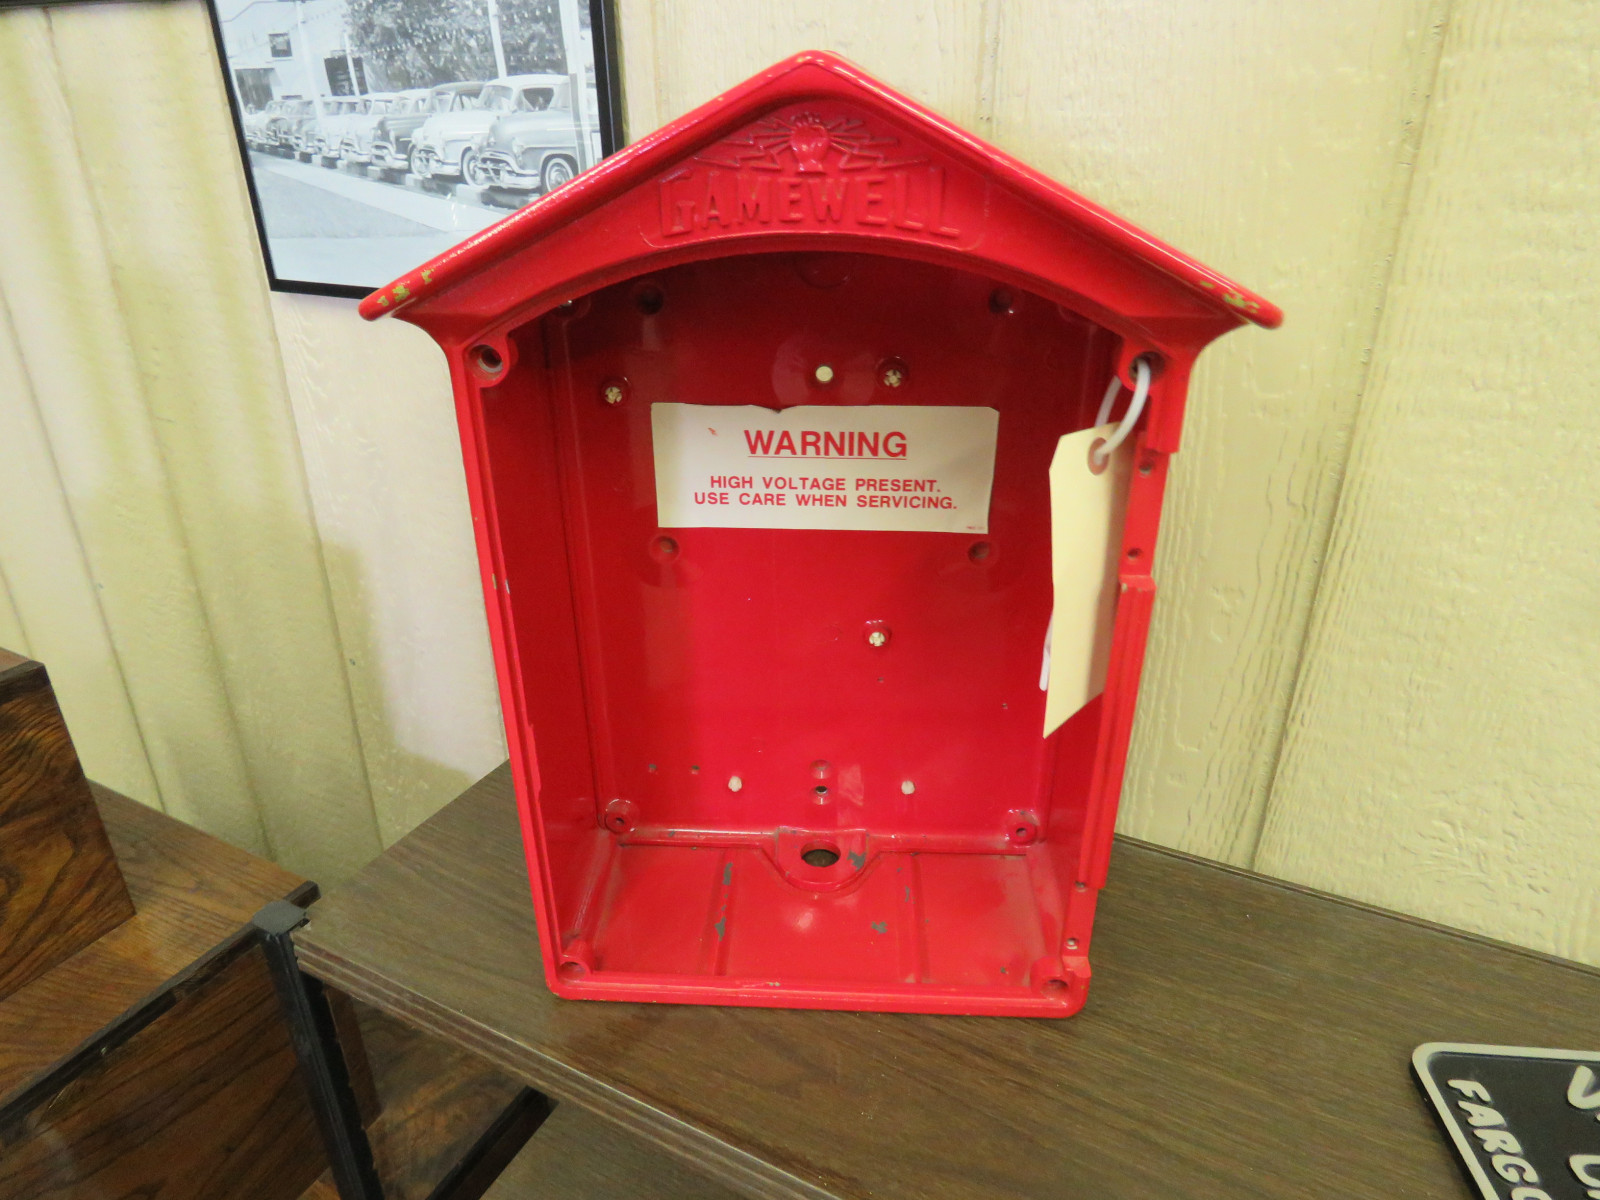 Firebox- Call Box with no door - Image 1